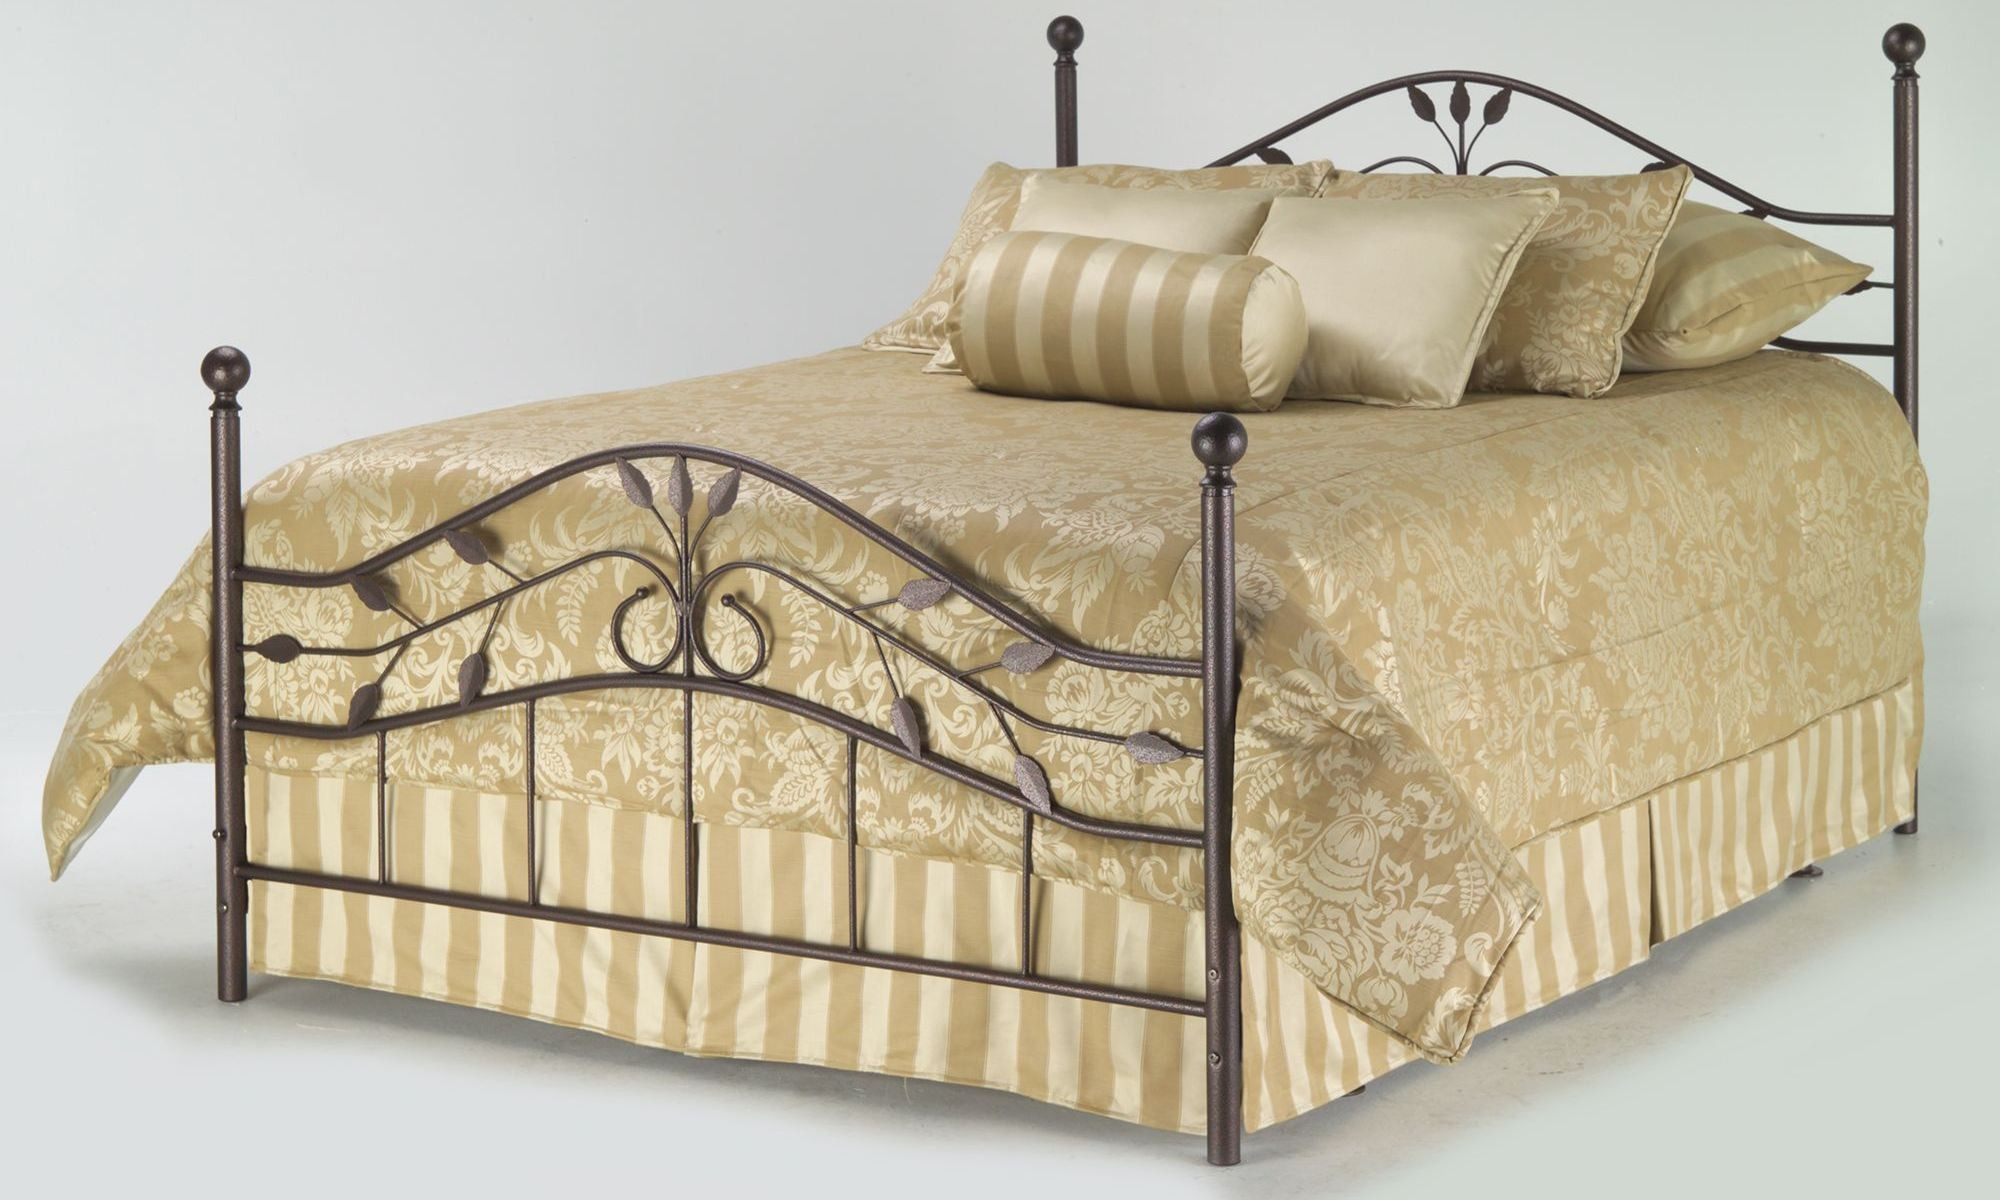 Sycamore Hammered Copper Queen Ornamental Poster Bed